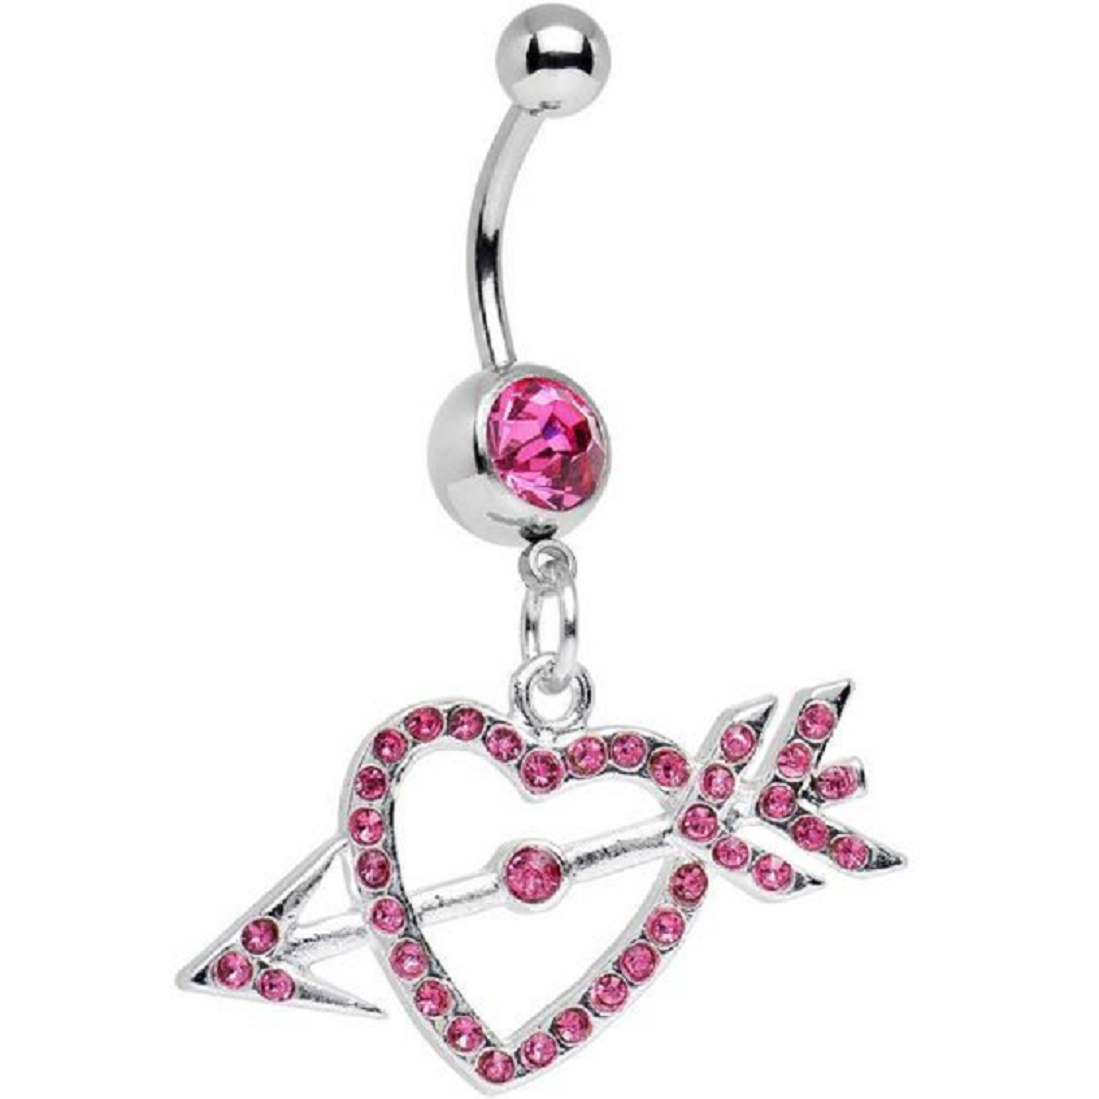 Belly Ring Bling:  Pink Gem Cupid's Arrow Hits the Heart Dangle Belly Ring with Sparkling Rhinestones